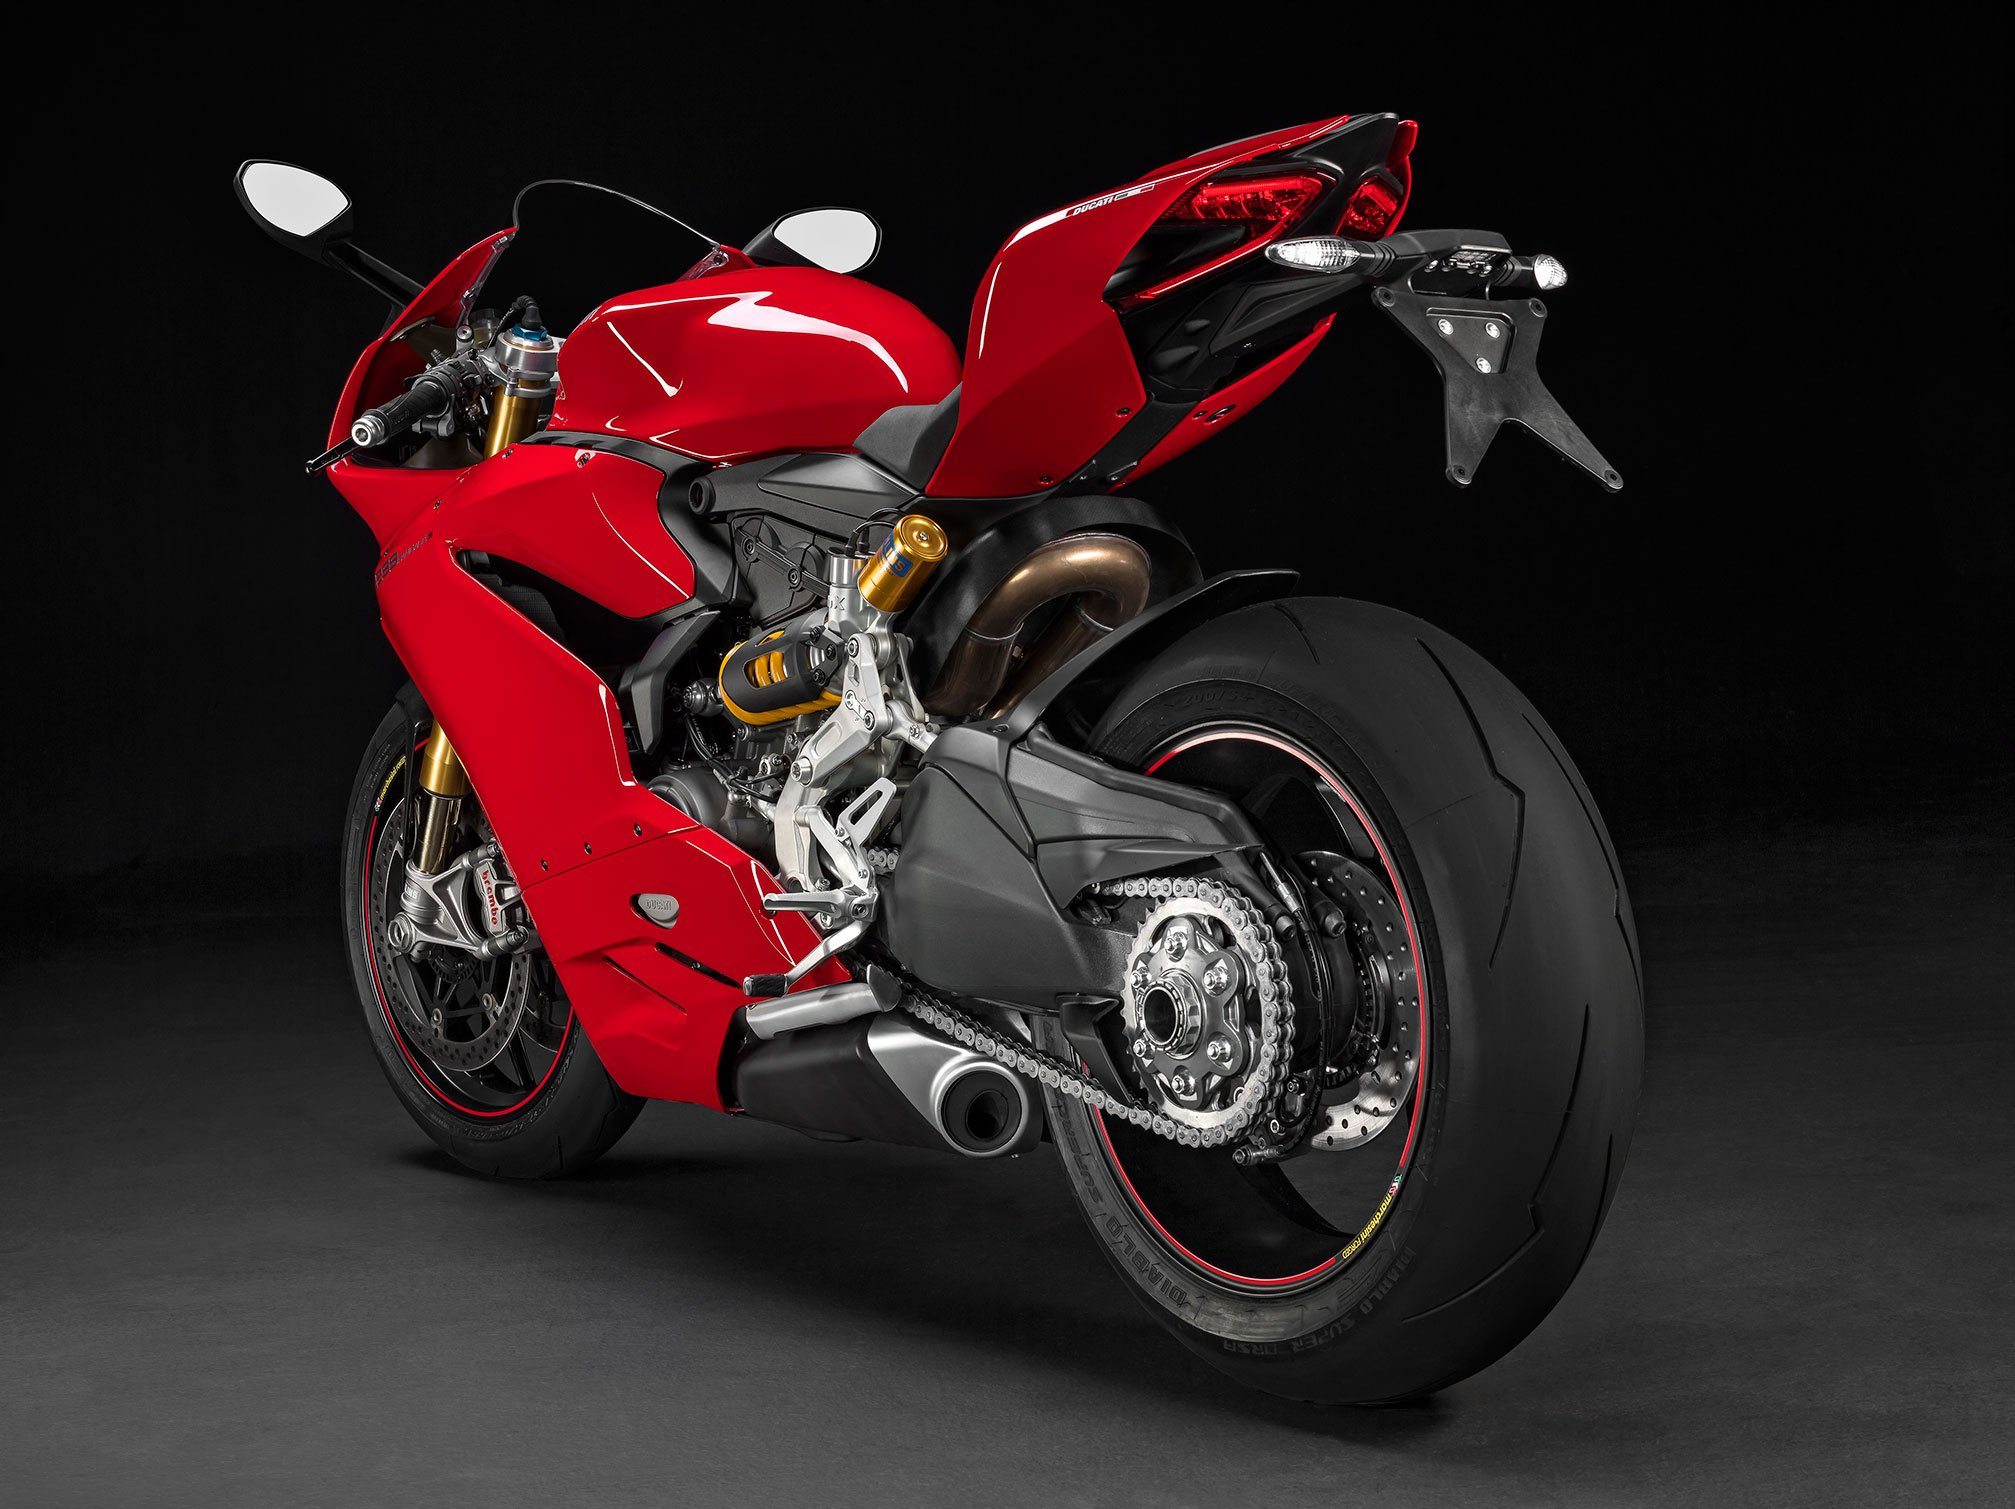 Ducati 1299 Panigale S 4k Wallpapers: 2015 Ducati Superbike 1299 Panigale Wallpapers (78